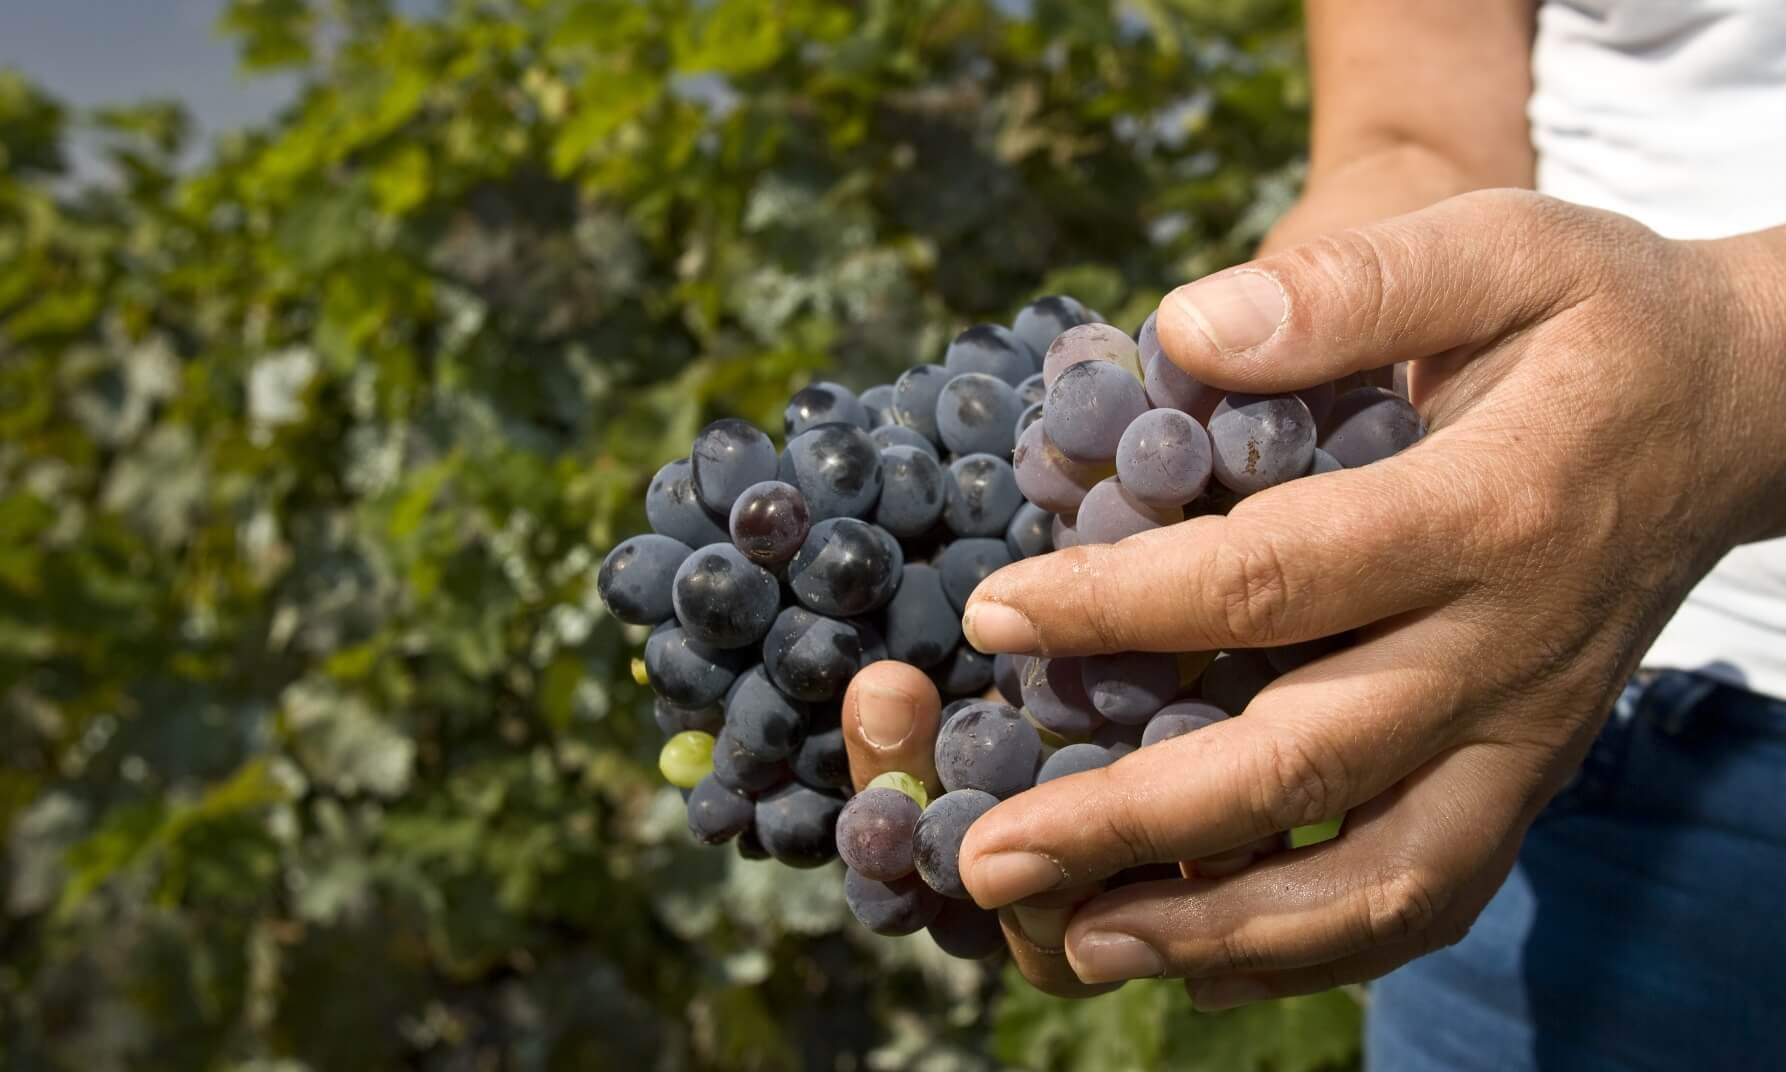 Hard-working hands holding a bunch of grapes outdoors